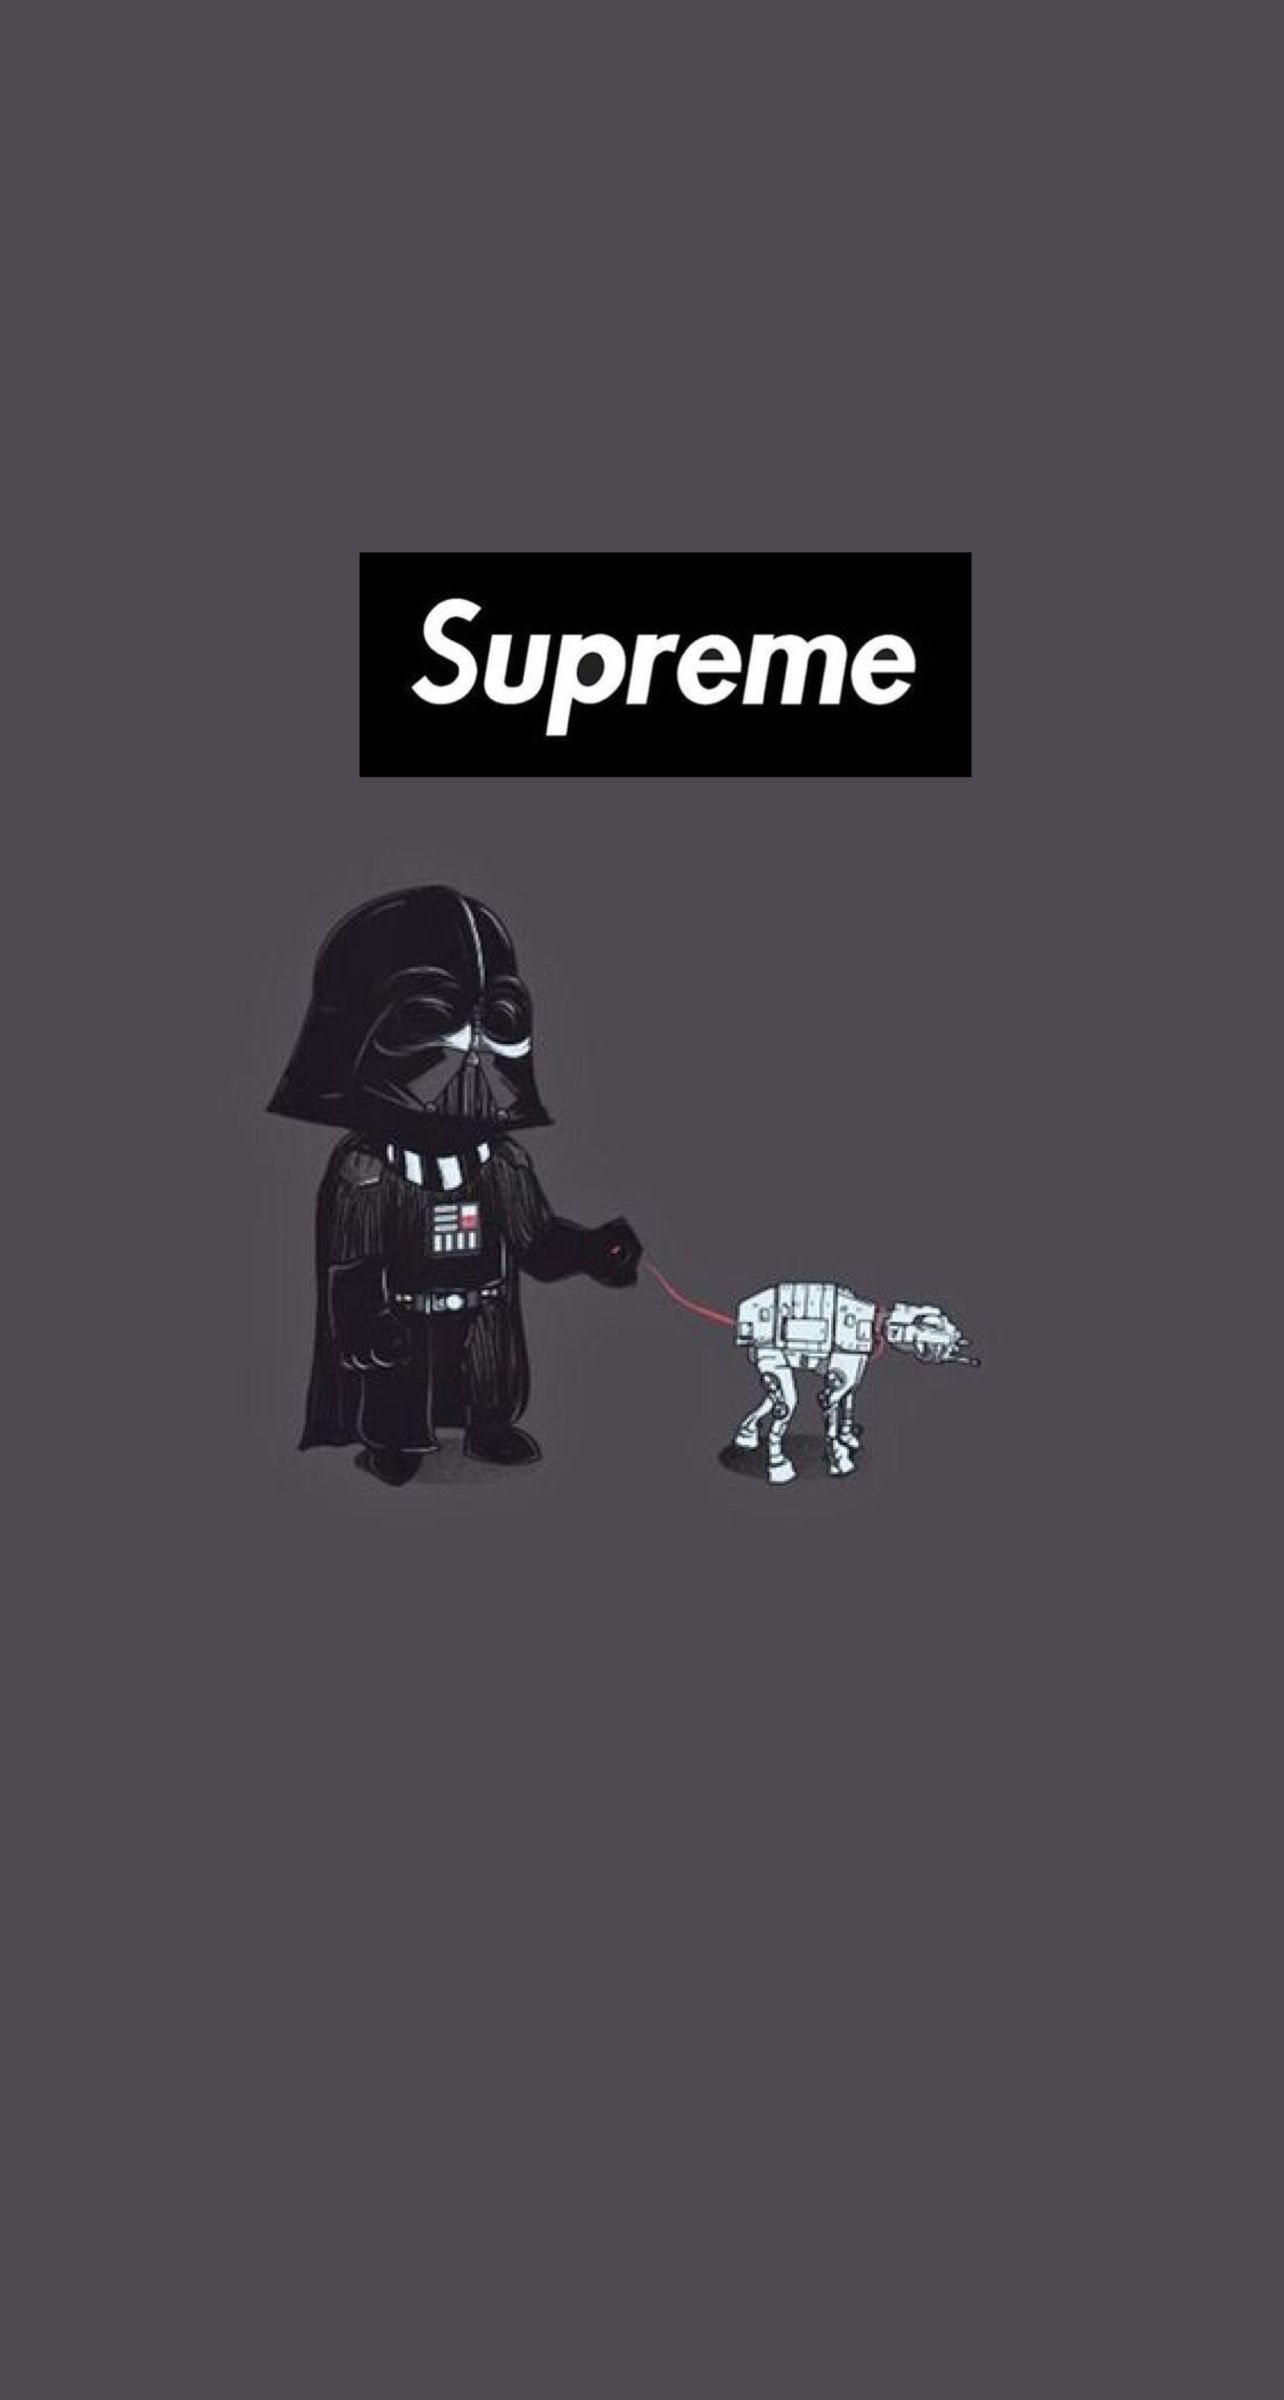 Pin By Anastasia On Supreme Supreme Iphone Wallpaper Supreme